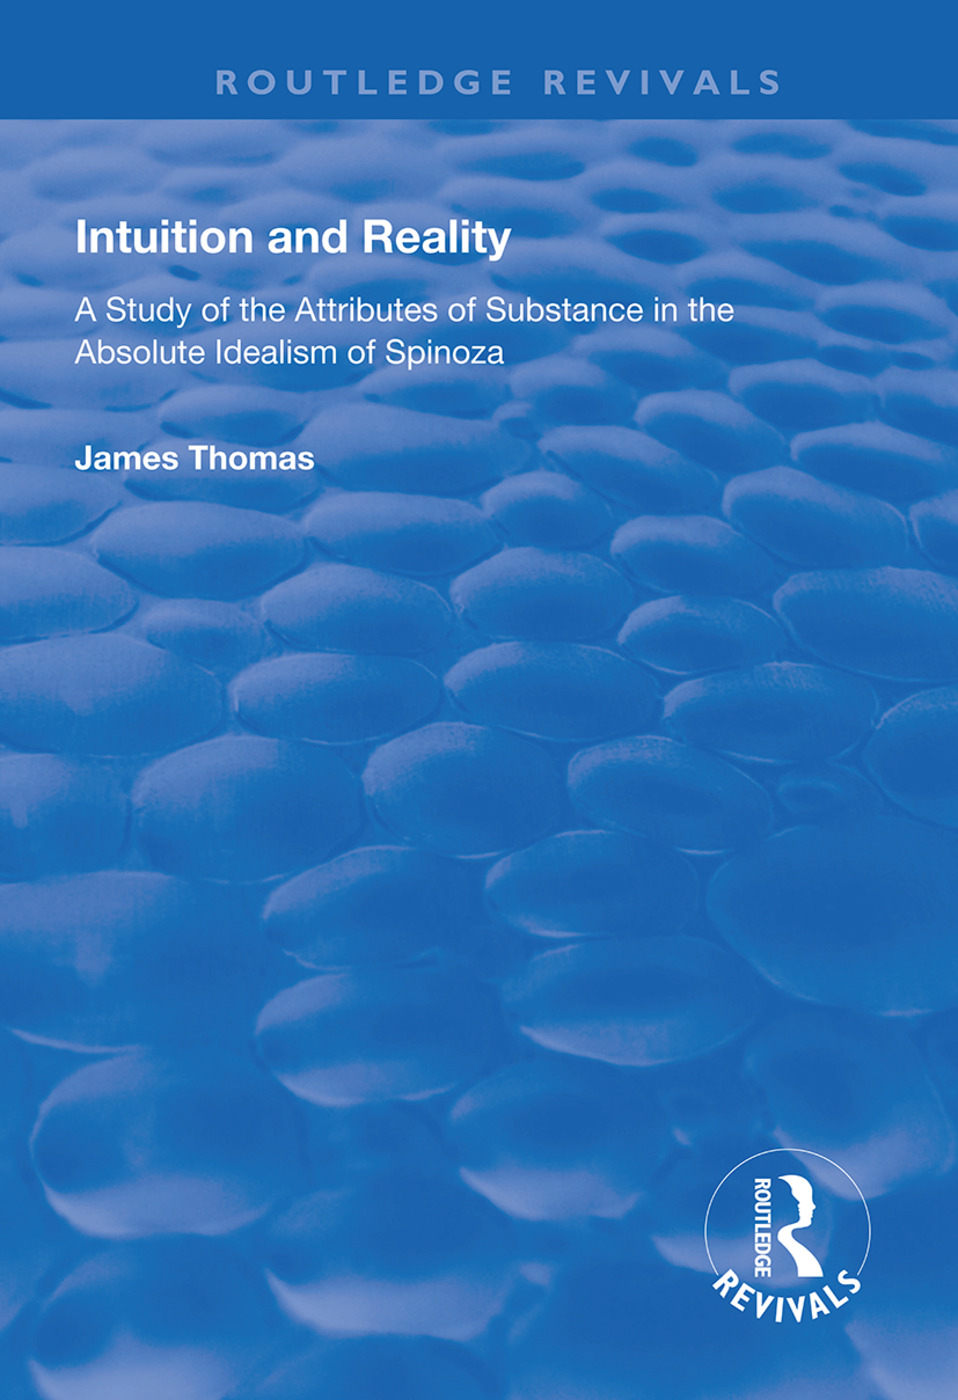 Intuition and Reality: A Study of the Attributes of Substance in the Absolute Idealism of Spinoza book cover